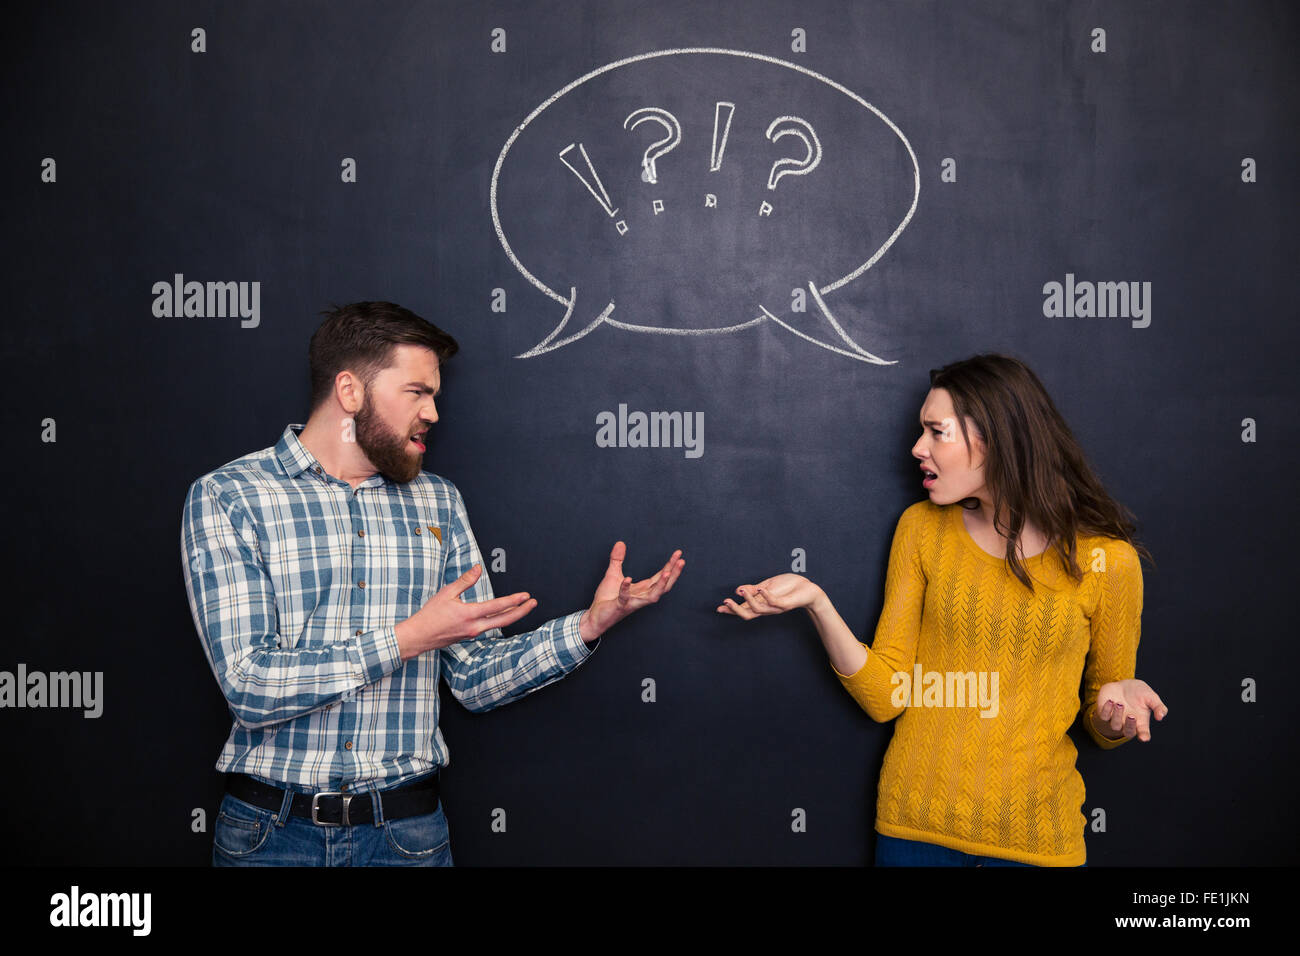 Unhappy young couple standing and quarreling over blackboard background - Stock Image